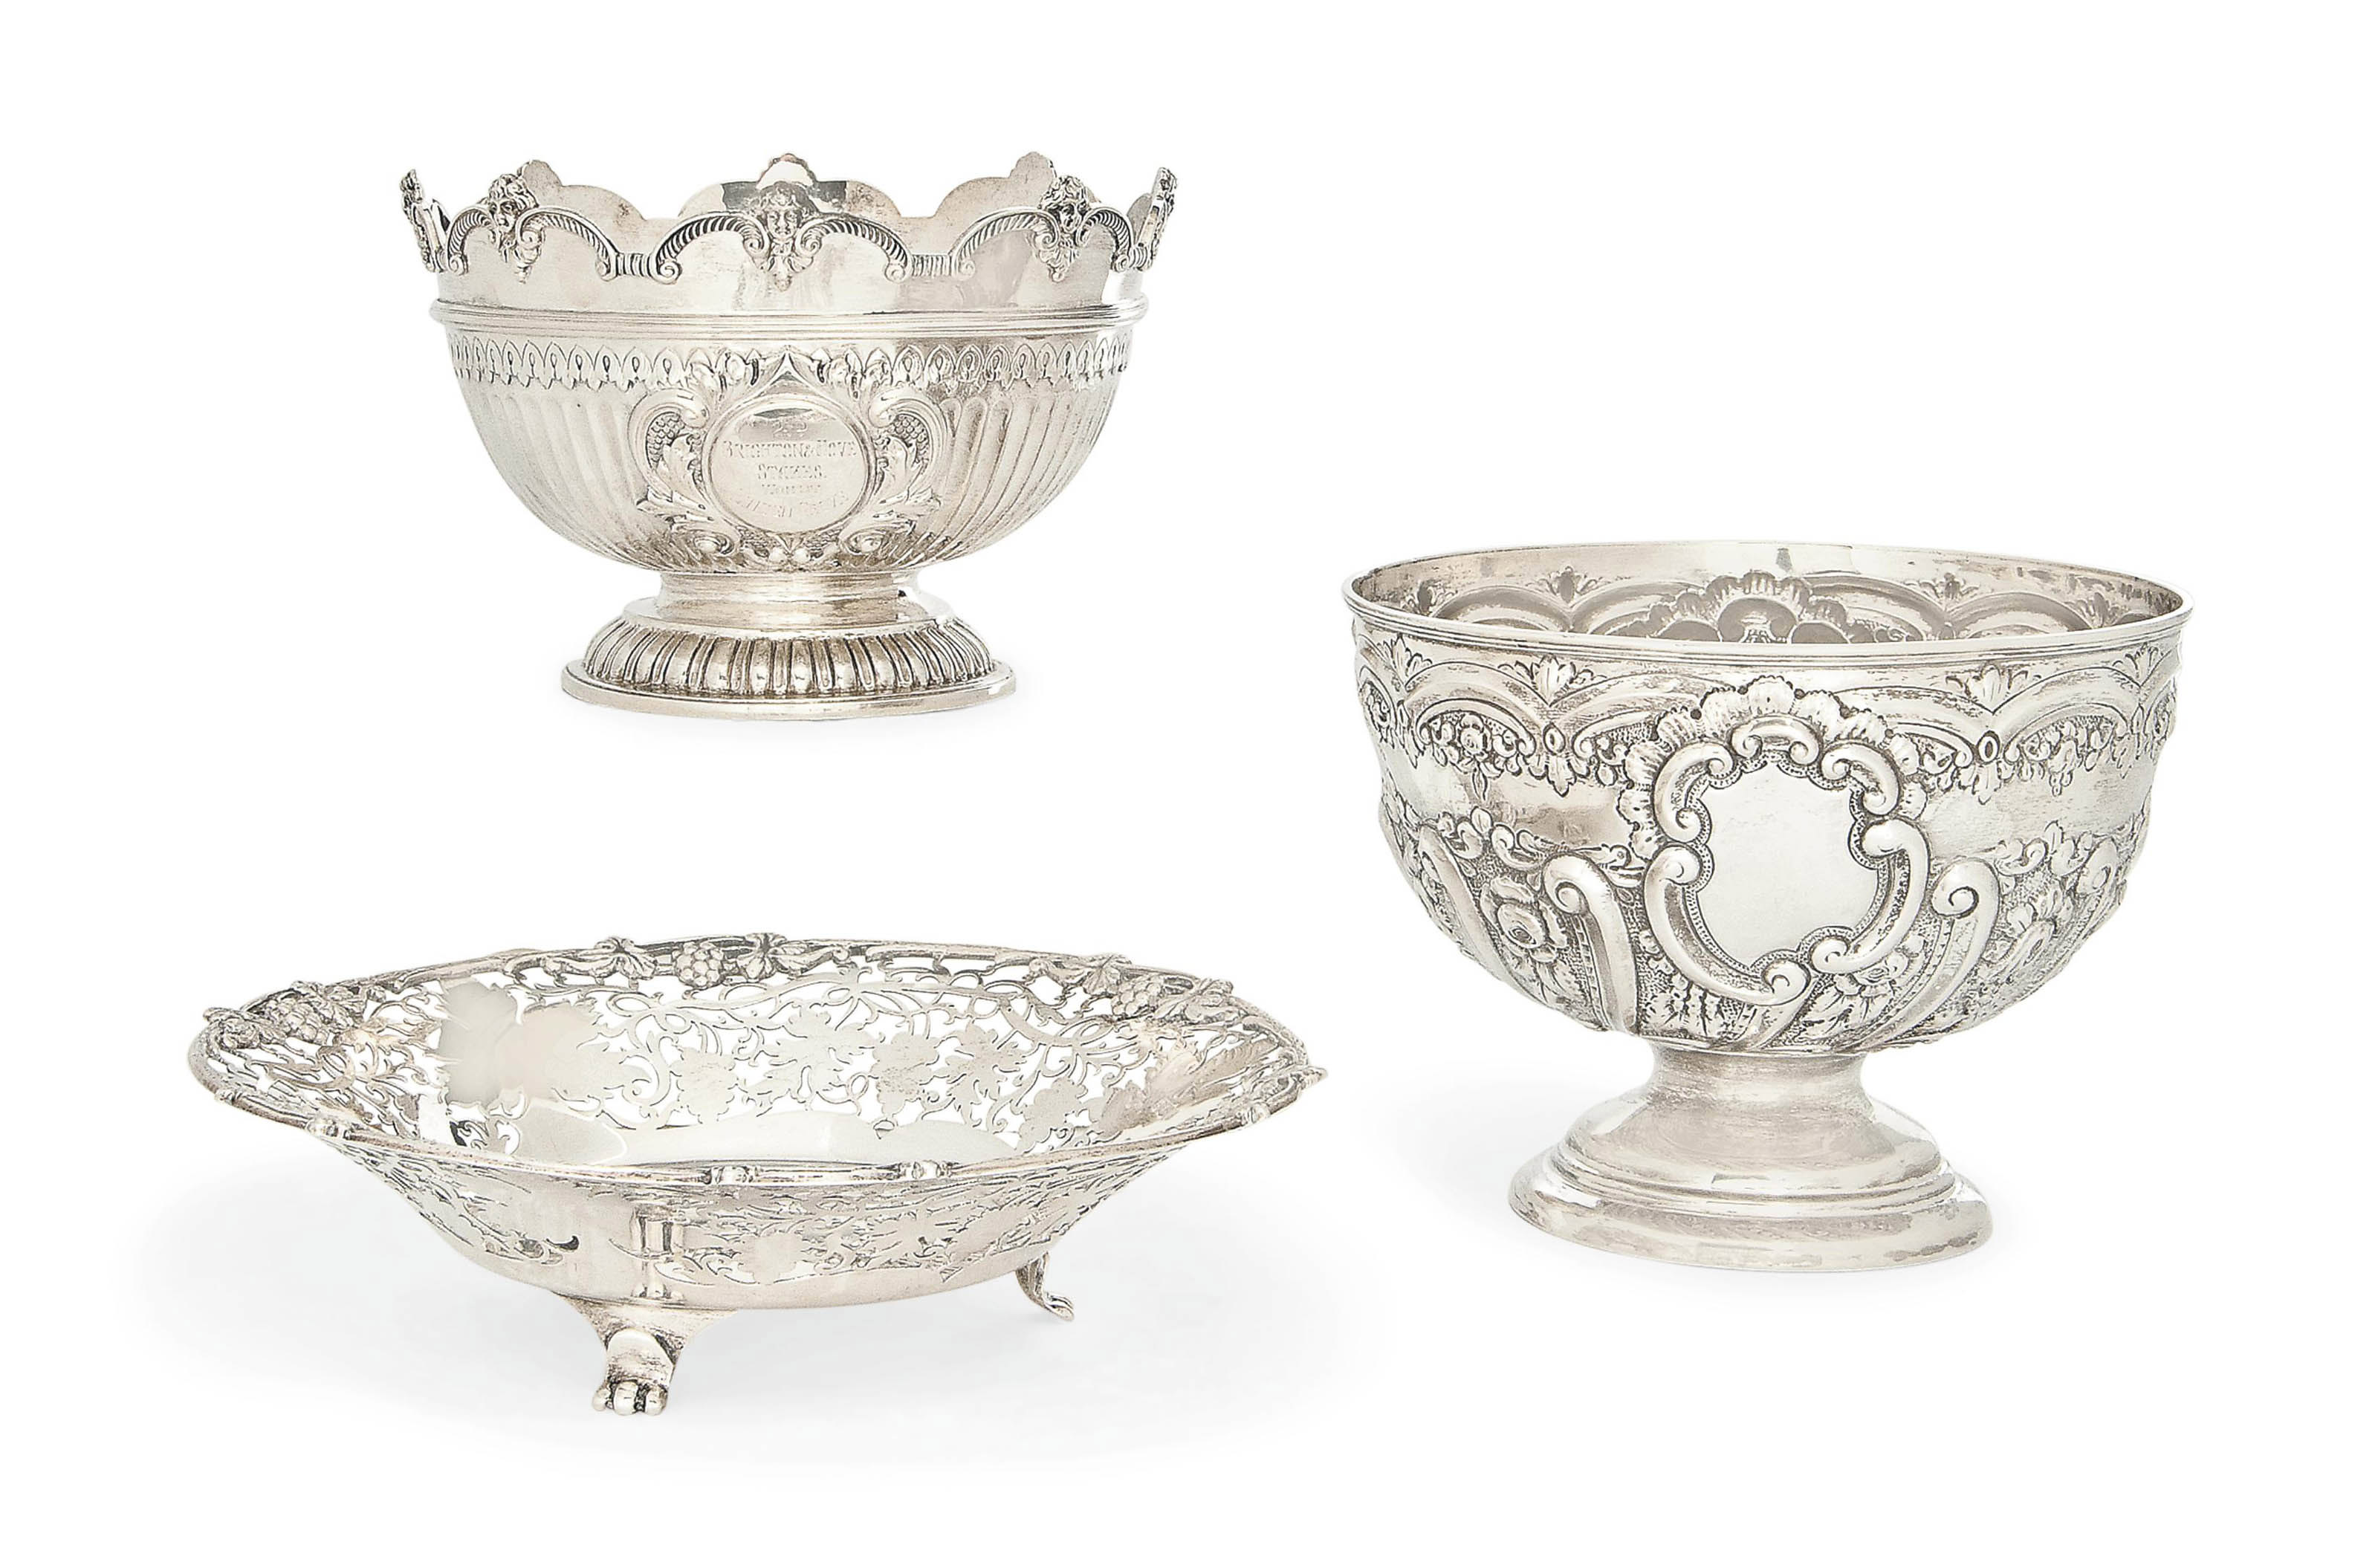 A VICTORIAN SILVER PRESENTATION BOWL IN THE FORM OF A MONTEITH